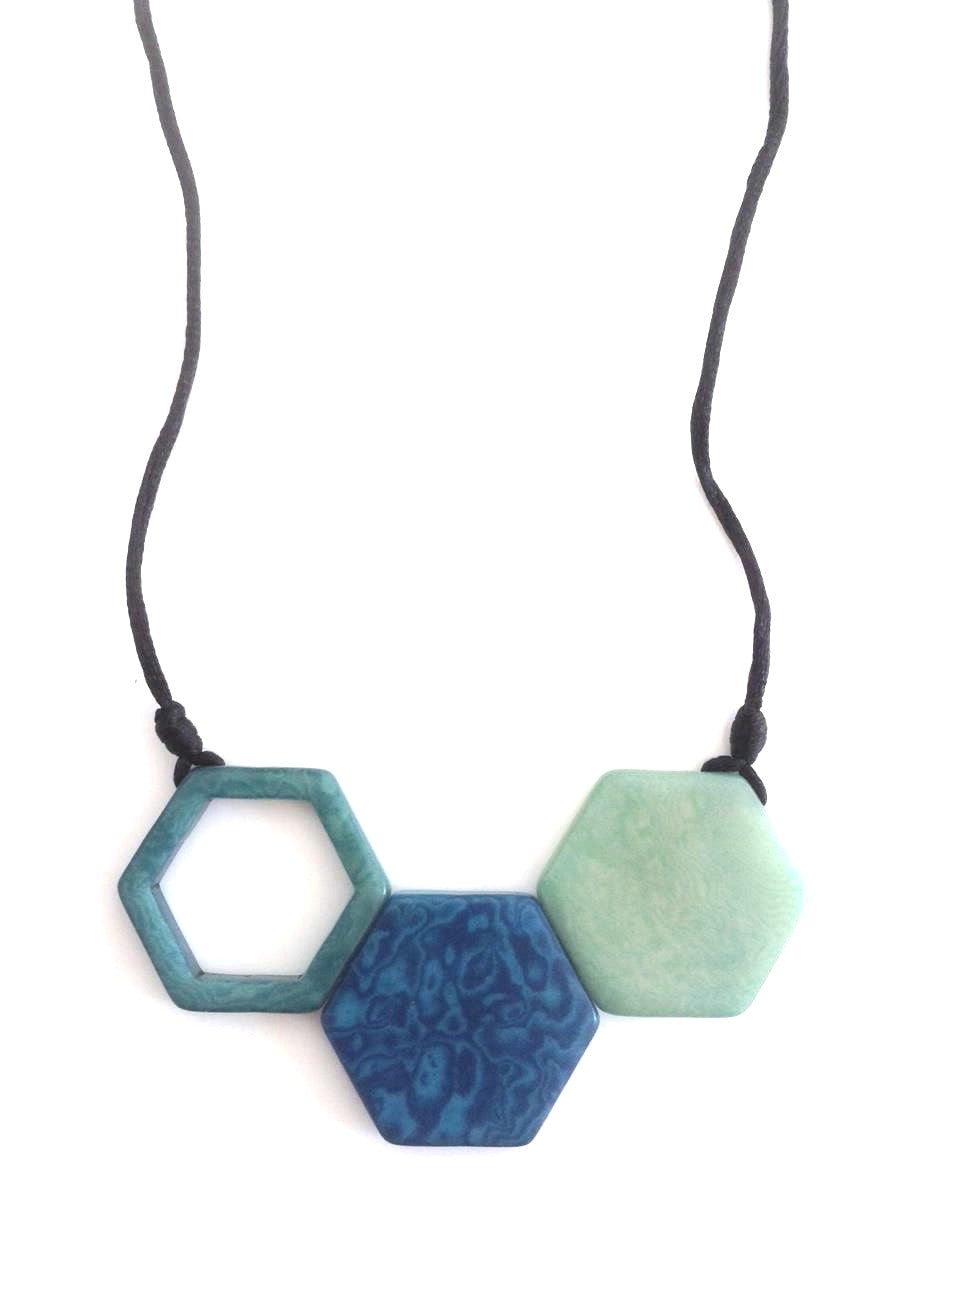 Rombos Necklace - Blue Tones